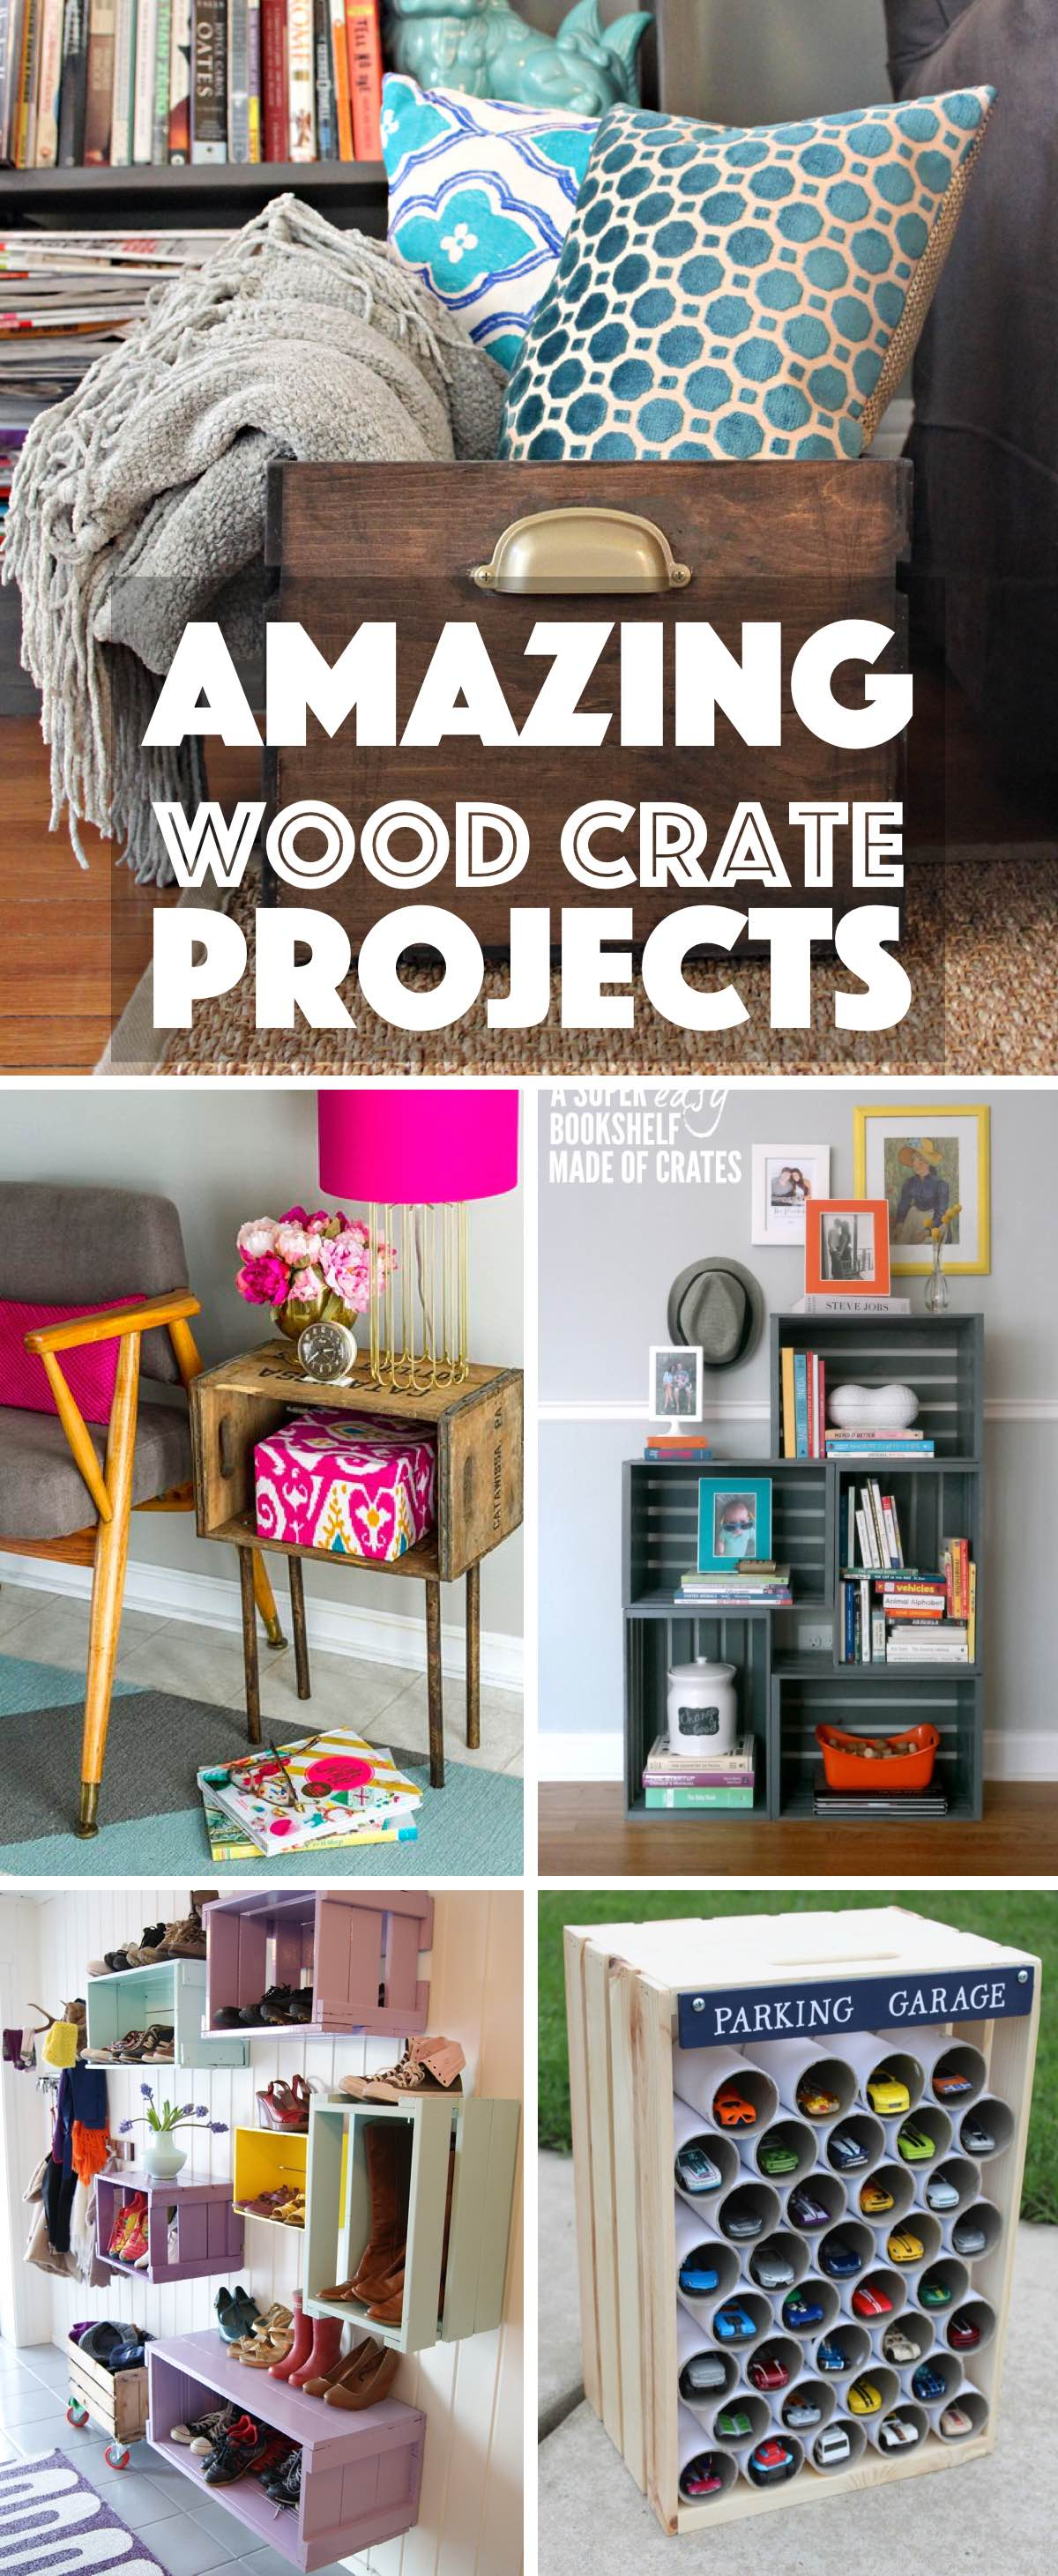 31 Amazing Wood Crate Projects That Range from Decor to Storage and More!